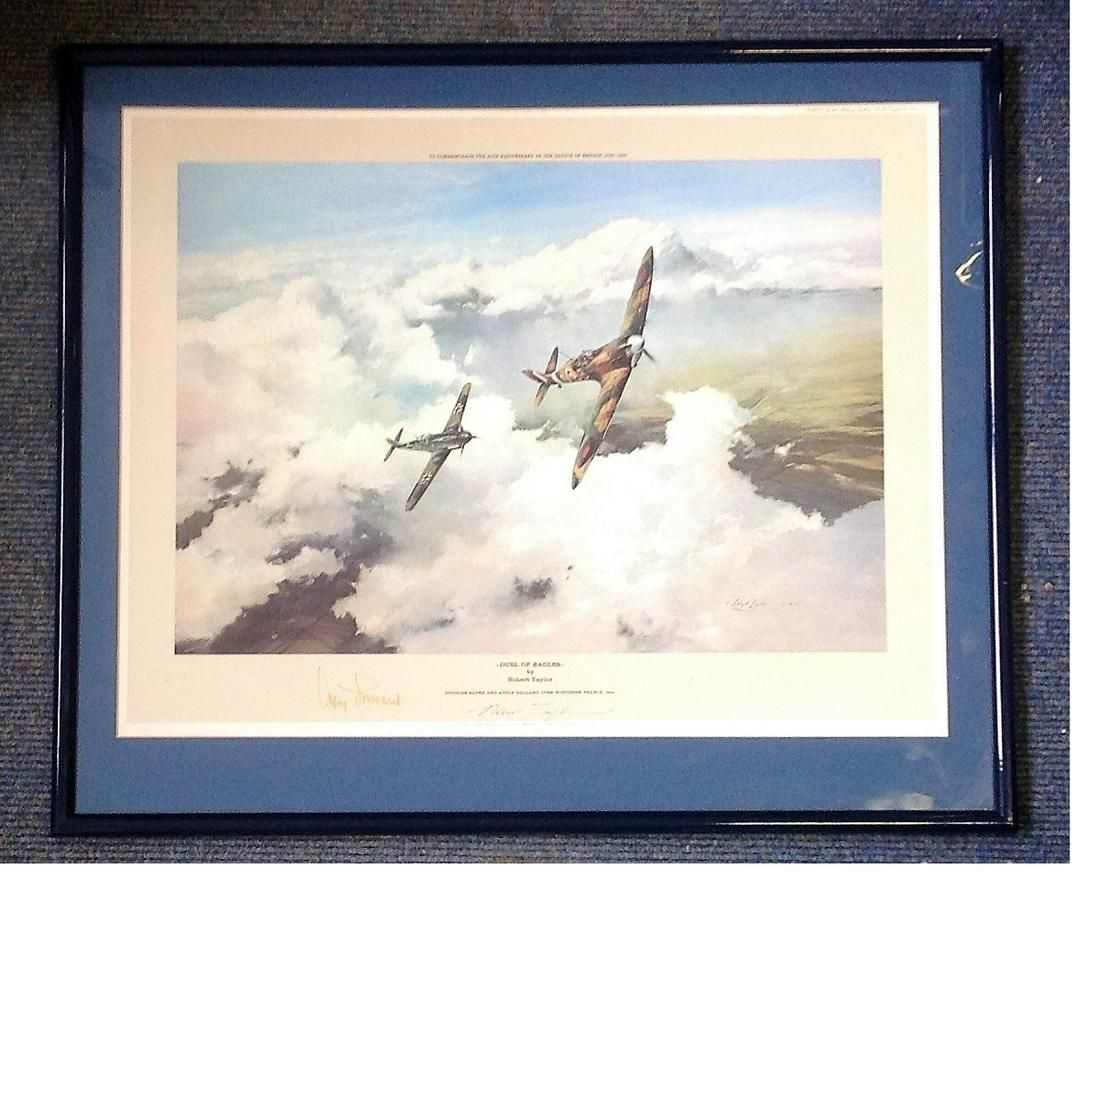 World War Two print 21x25 framed and mounted titled